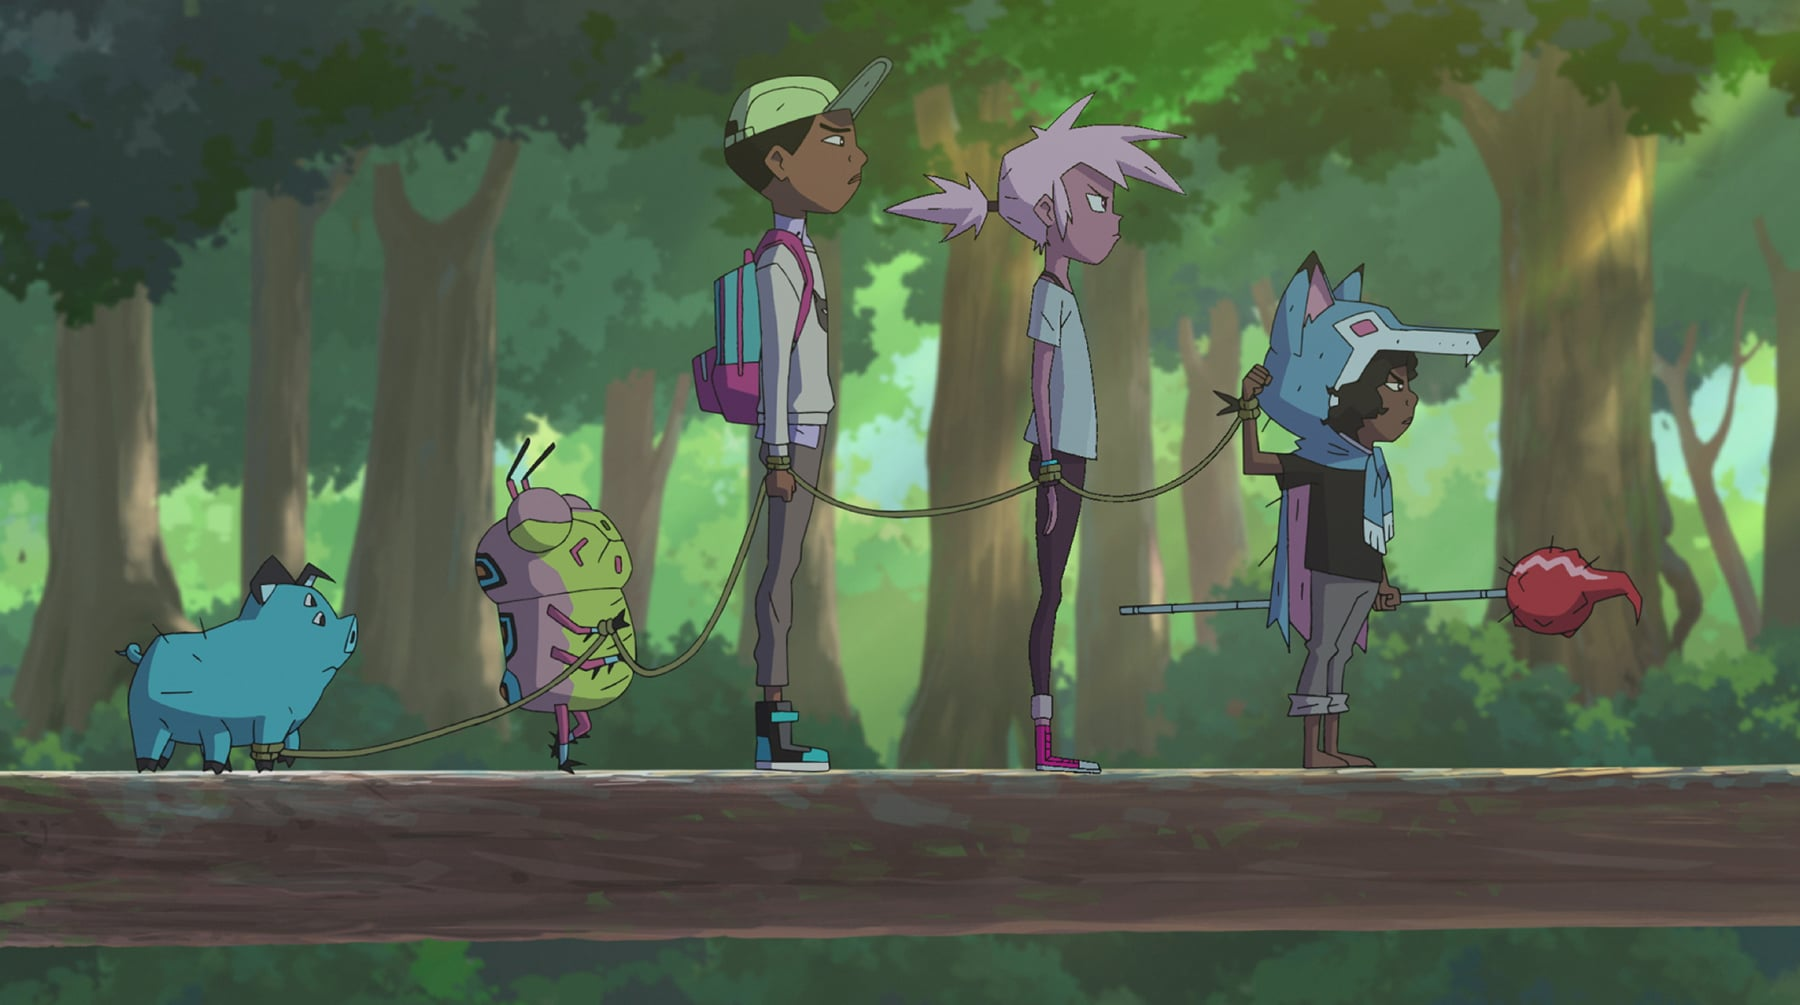 Kipo THE PACK. DreamWorks Kipo and The Age of Wonderbeasts will return to Netflix June 12, for a second season filled with adventures through the whimsical, weird post-apocalyptic world of Las Vistas.